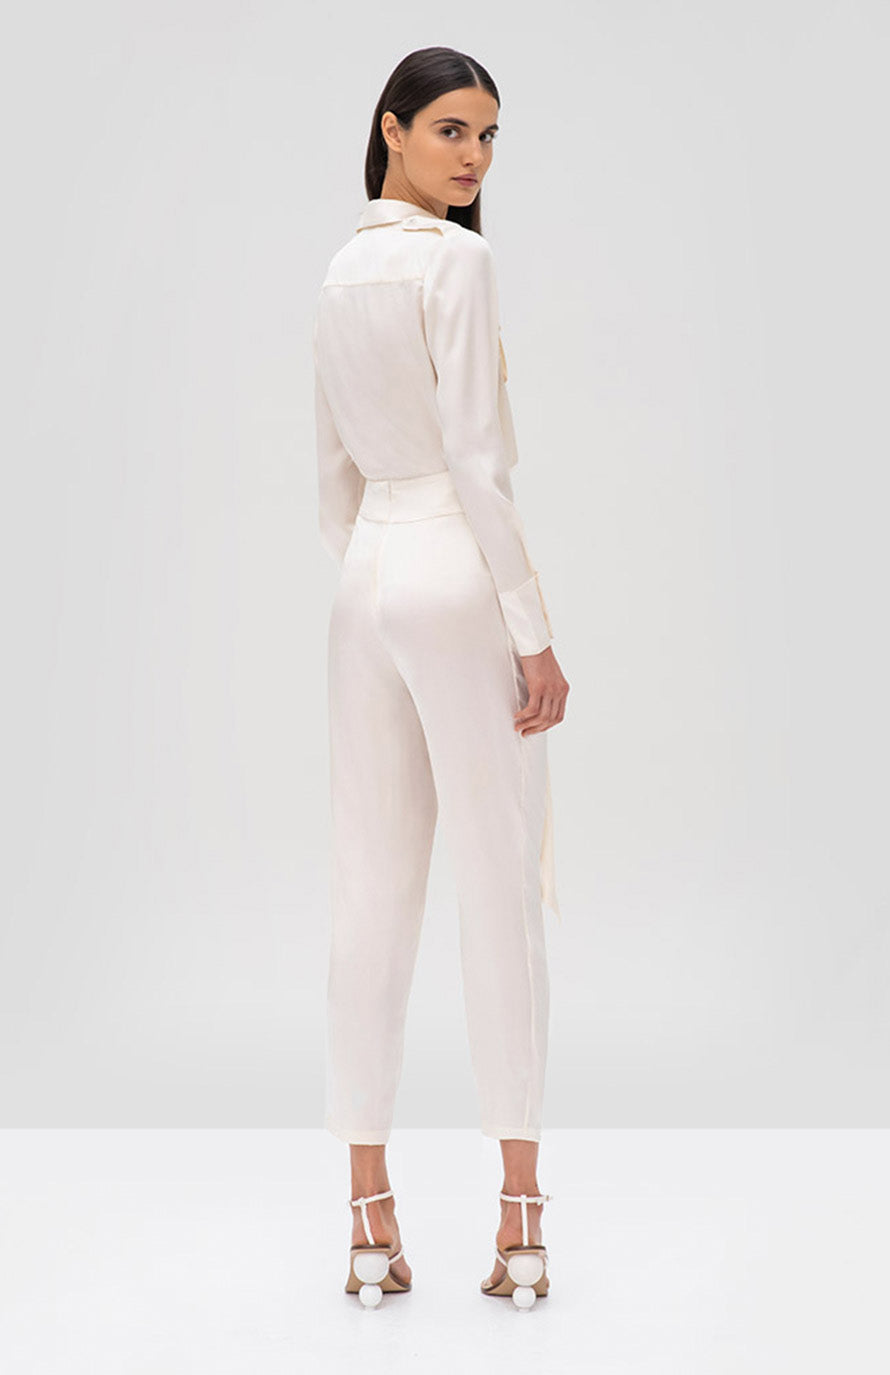 Alexis Montrose Top and Judson Pant Ivory - Rear View